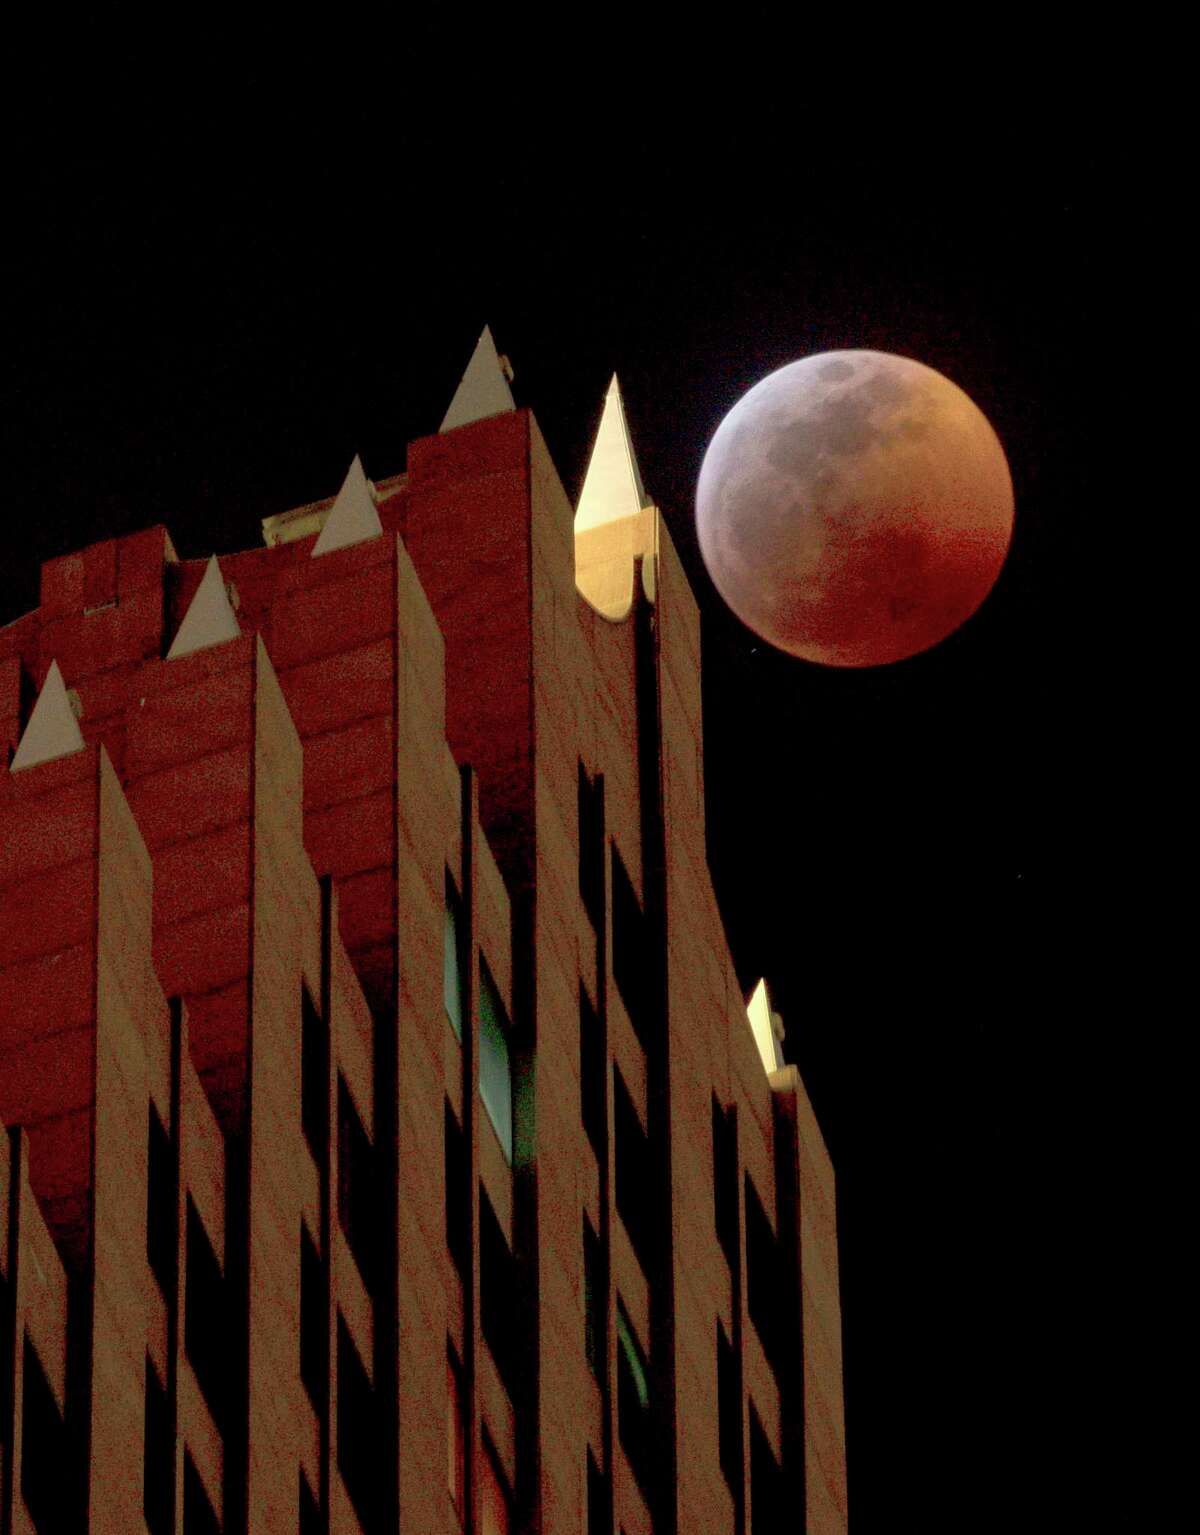 A super blood wolf moon eclipse occurs behind the Bank of America Center building in downtown Houston, Sunday, Jan. 20, 2019. The moon was fully covered by the Earth's shadow over Houston around 10:30 p.m. Sunday night.